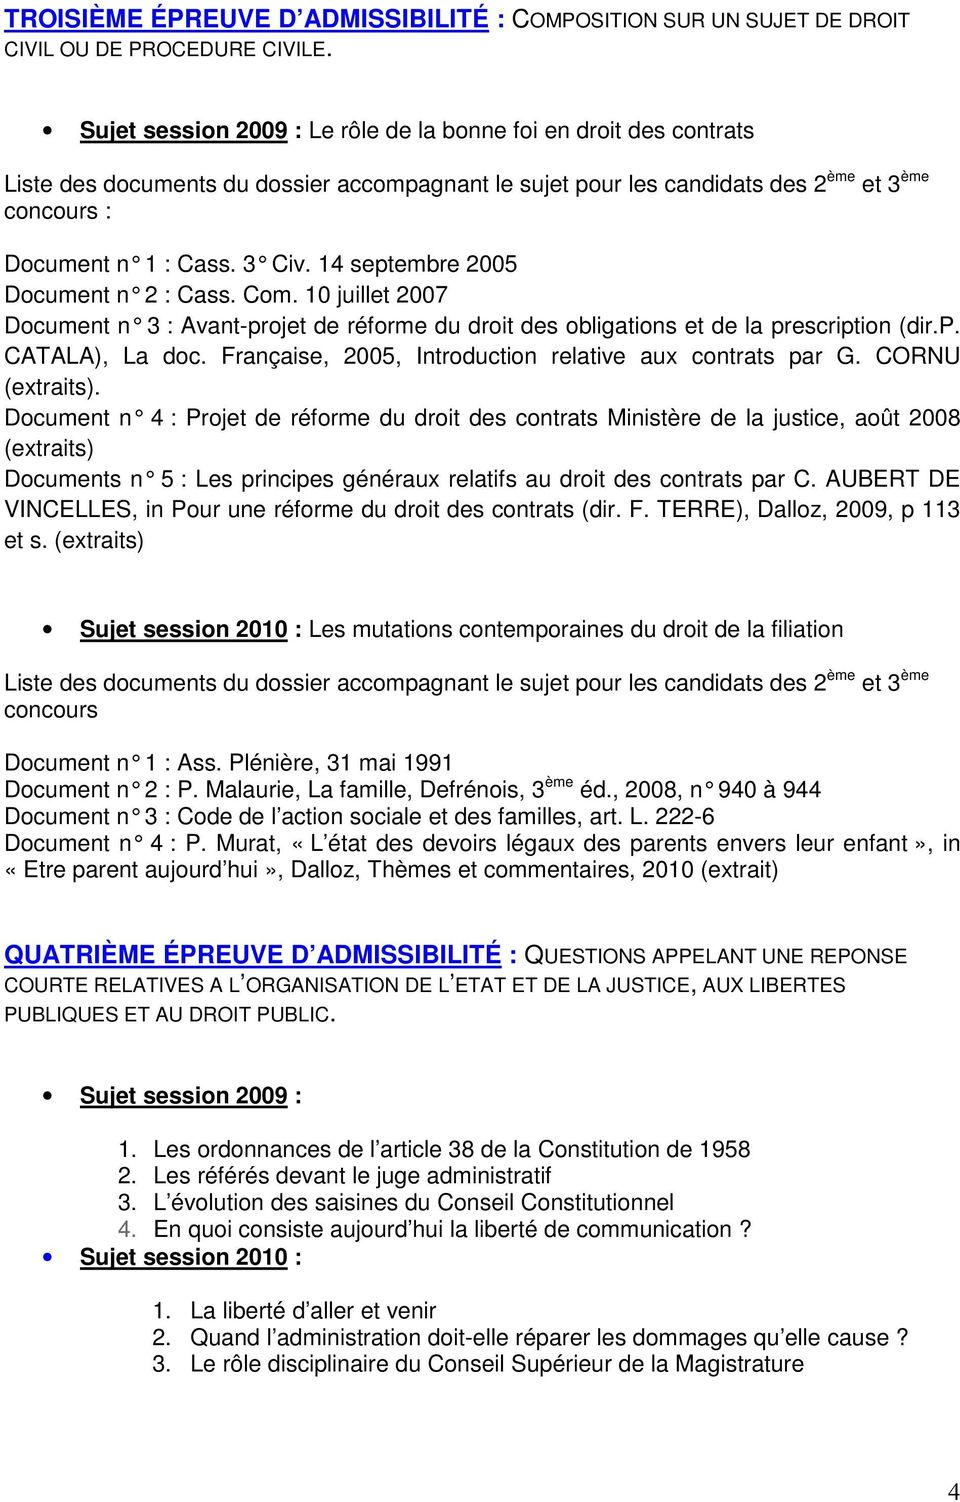 14 septembre 2005 Document n 2 : Cass. Com. 10 juillet 2007 Document n 3 : Avant-projet de réforme du droit de s obligations et de la prescription (dir.p. CATALA), La doc.